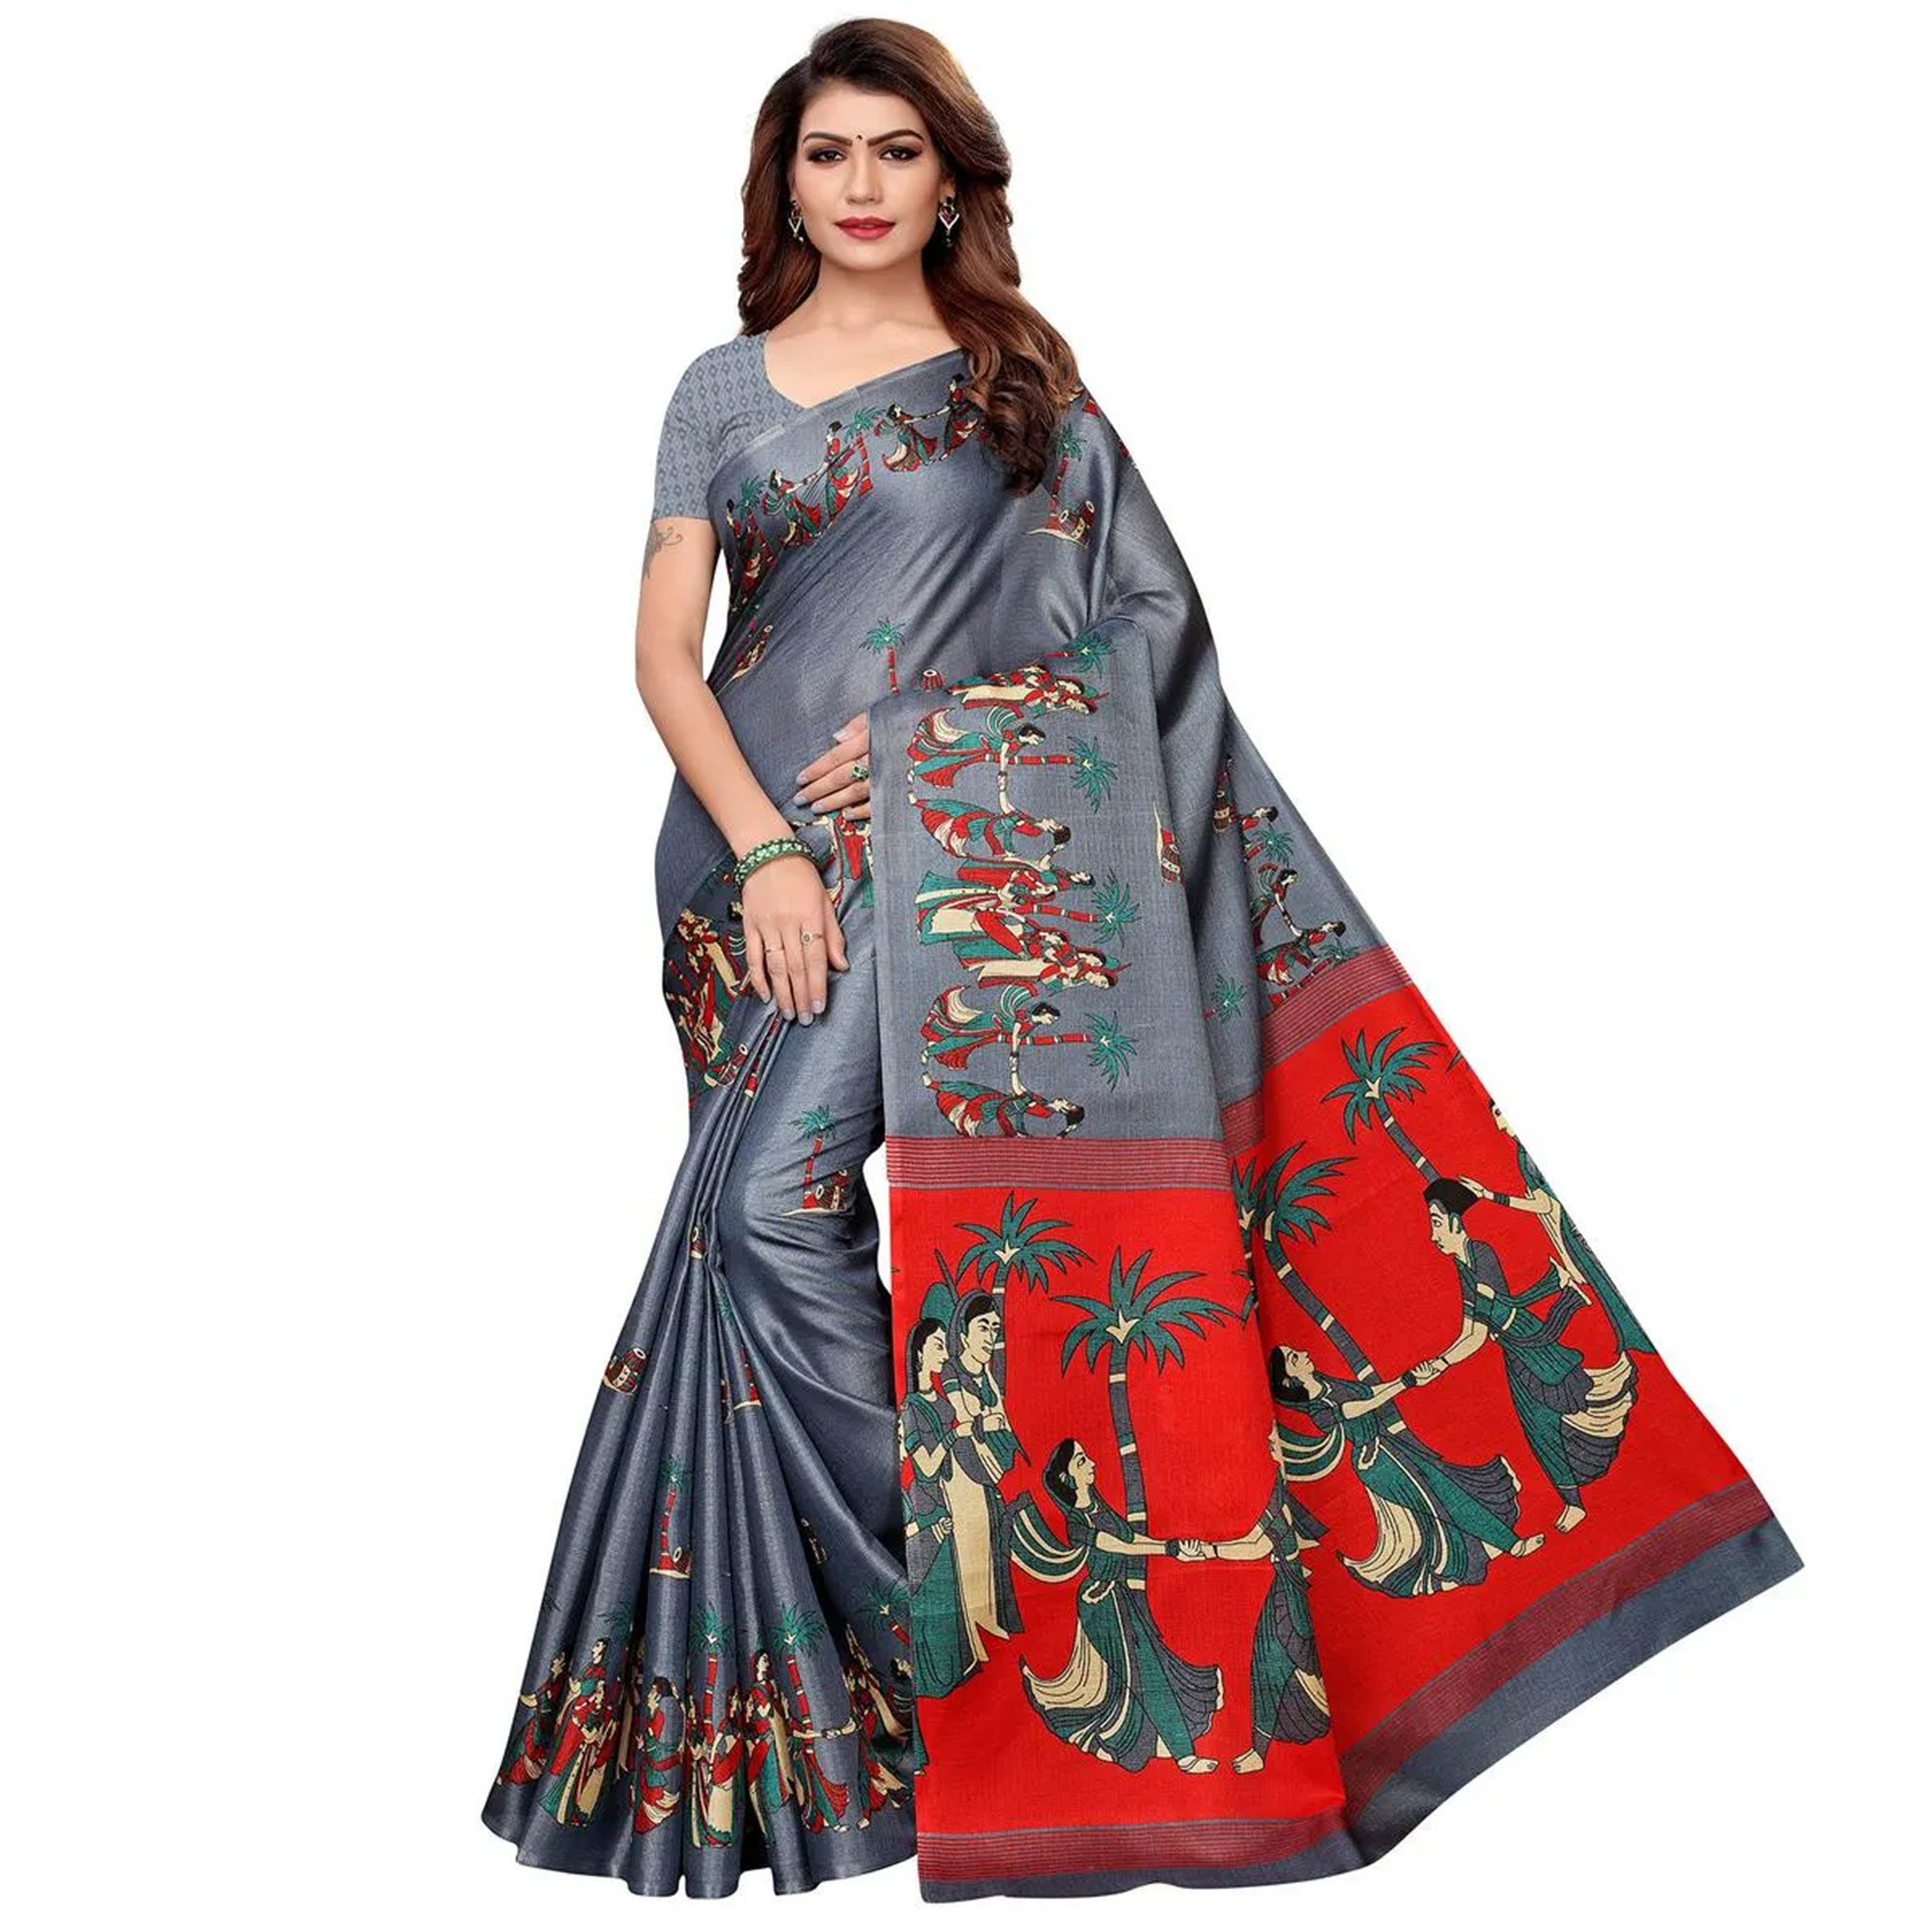 Appealing Festive Wear Printed Cotton Silk Saree Pack of 2